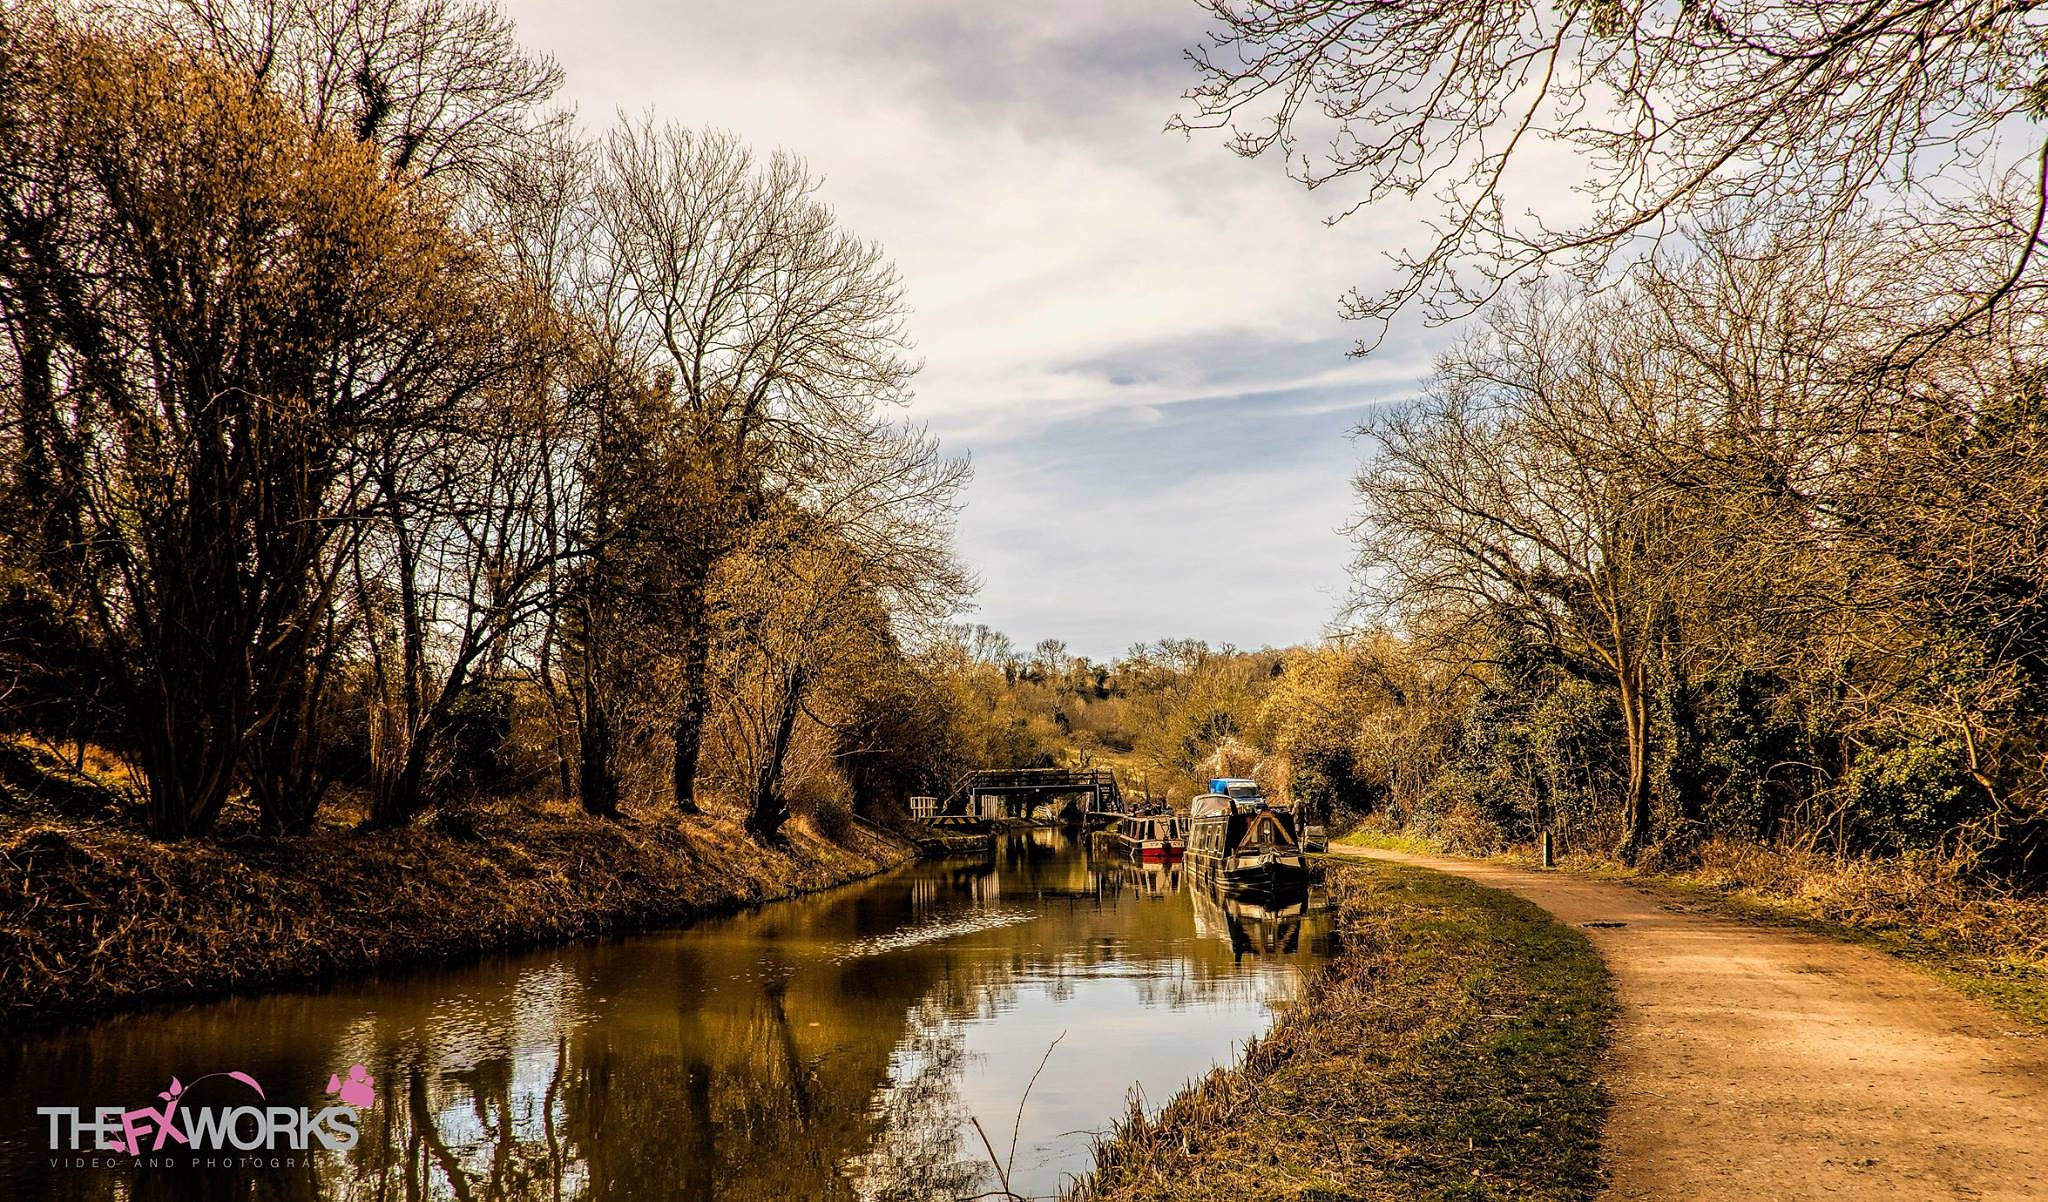 kenett and Avon canal - www.thefxworks.co.uk by Michael Jeremy